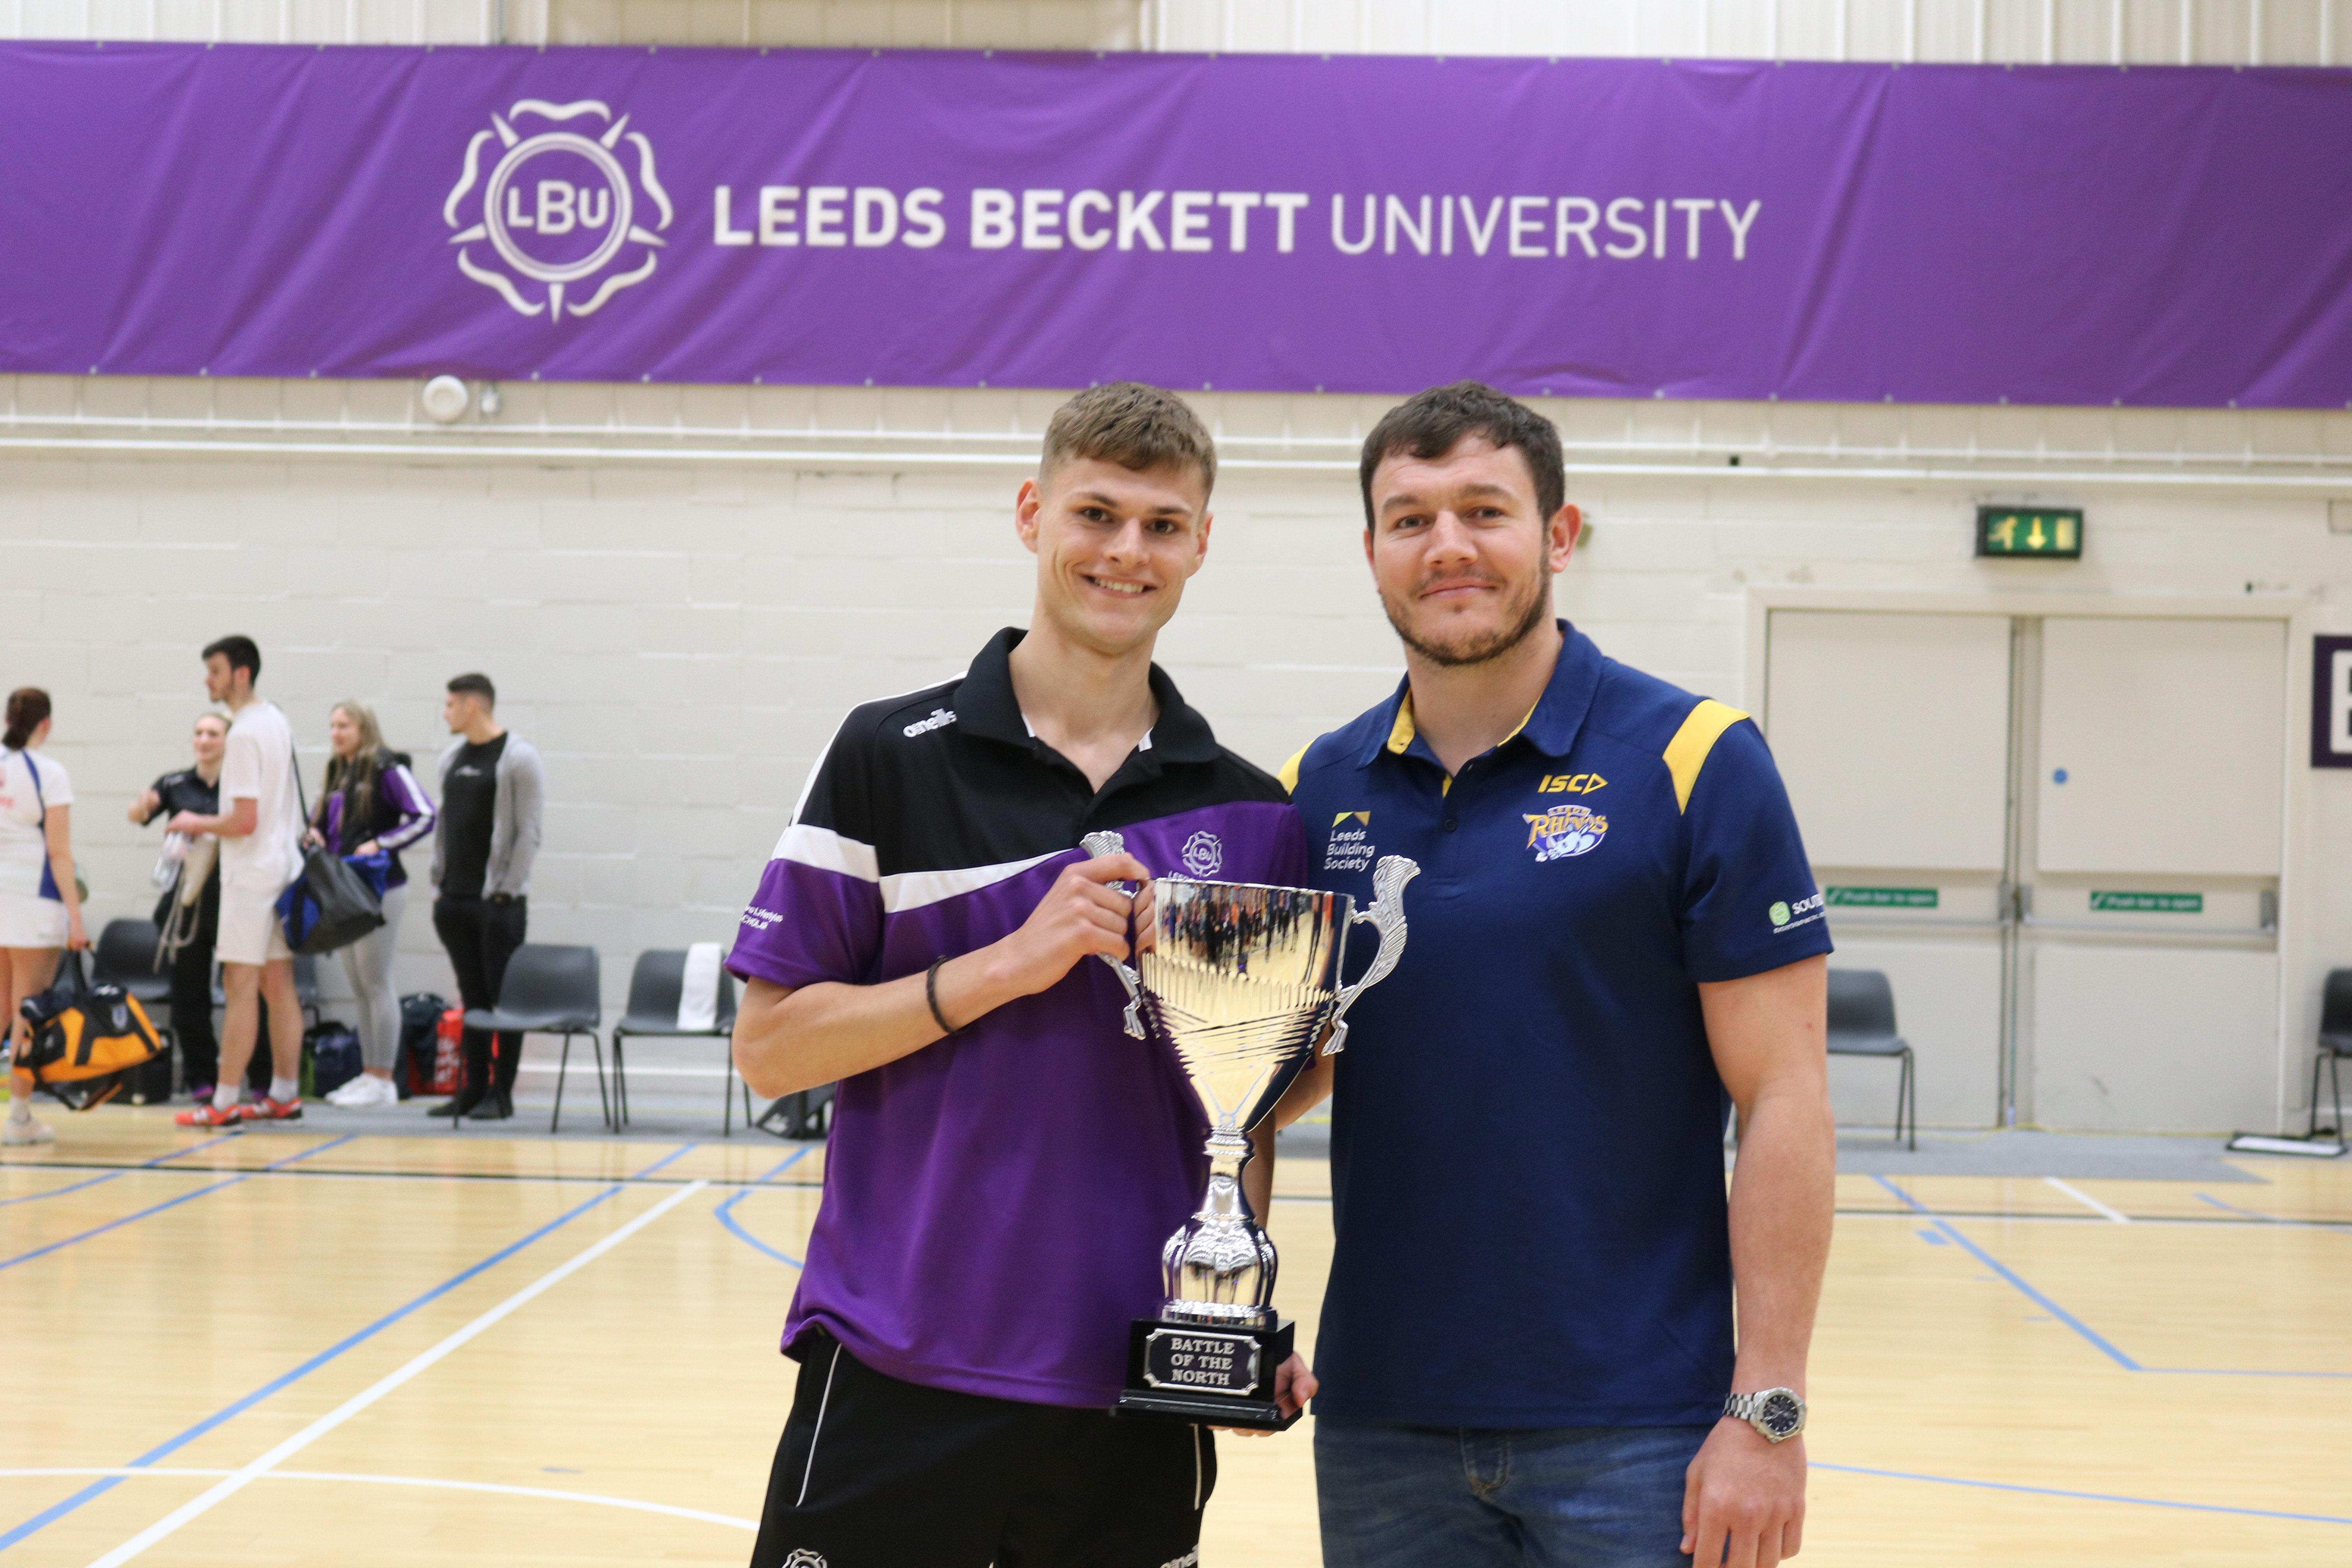 Leeds Beckett crowned Battle of the North champions